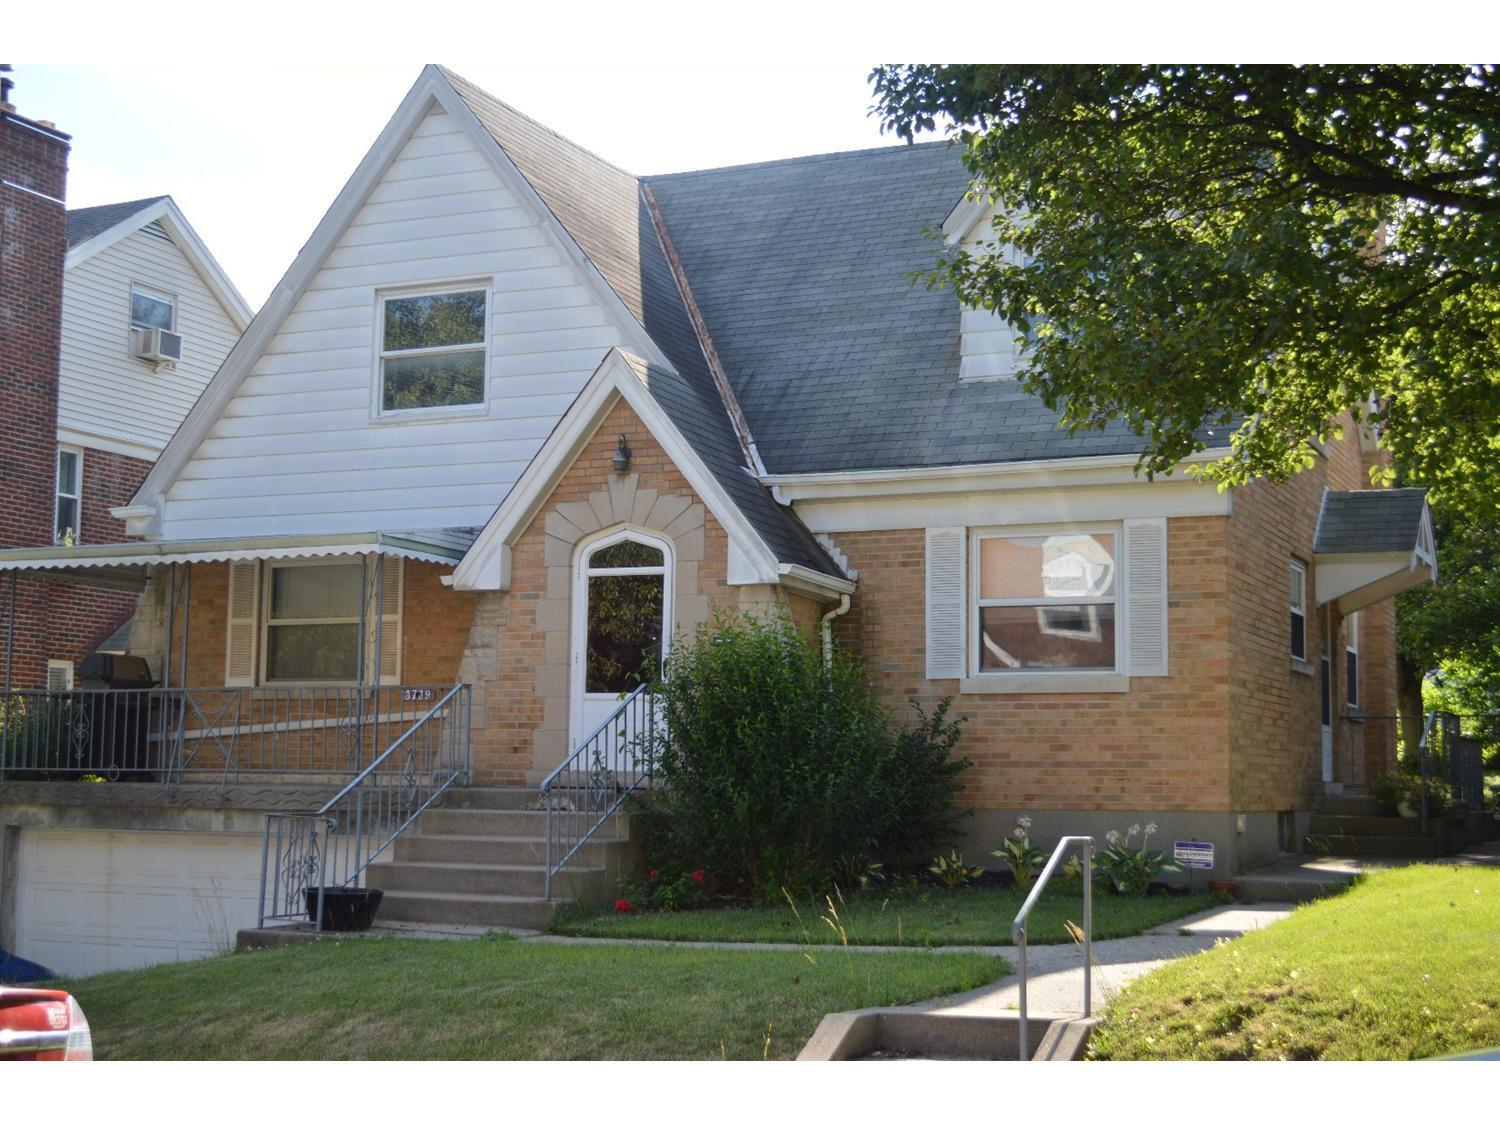 marydell singles 321 marydell rd, baltimore, md, 21229 is a single family home of 1,152 sqft on a lot of 1,306 sqft (or 003 acres) zillow's zestimate® for 321 marydell rd is $100,121 and.